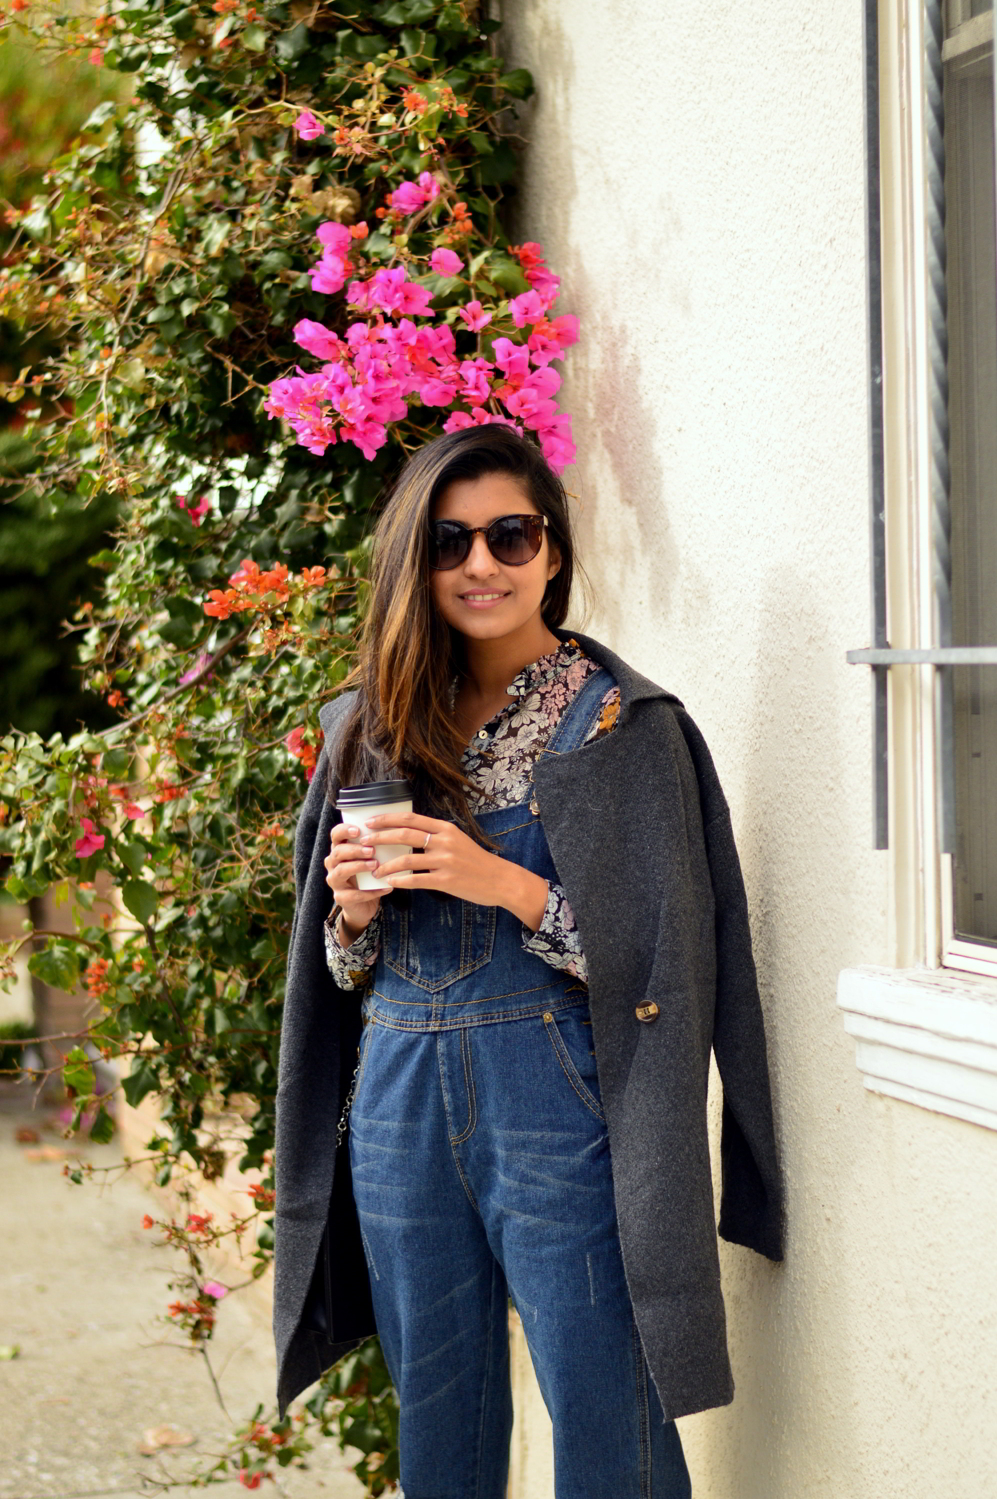 boyfriend-overalls-floral-blouse-spring-style-bud-stop-san-francisco-blogger-outfit 5